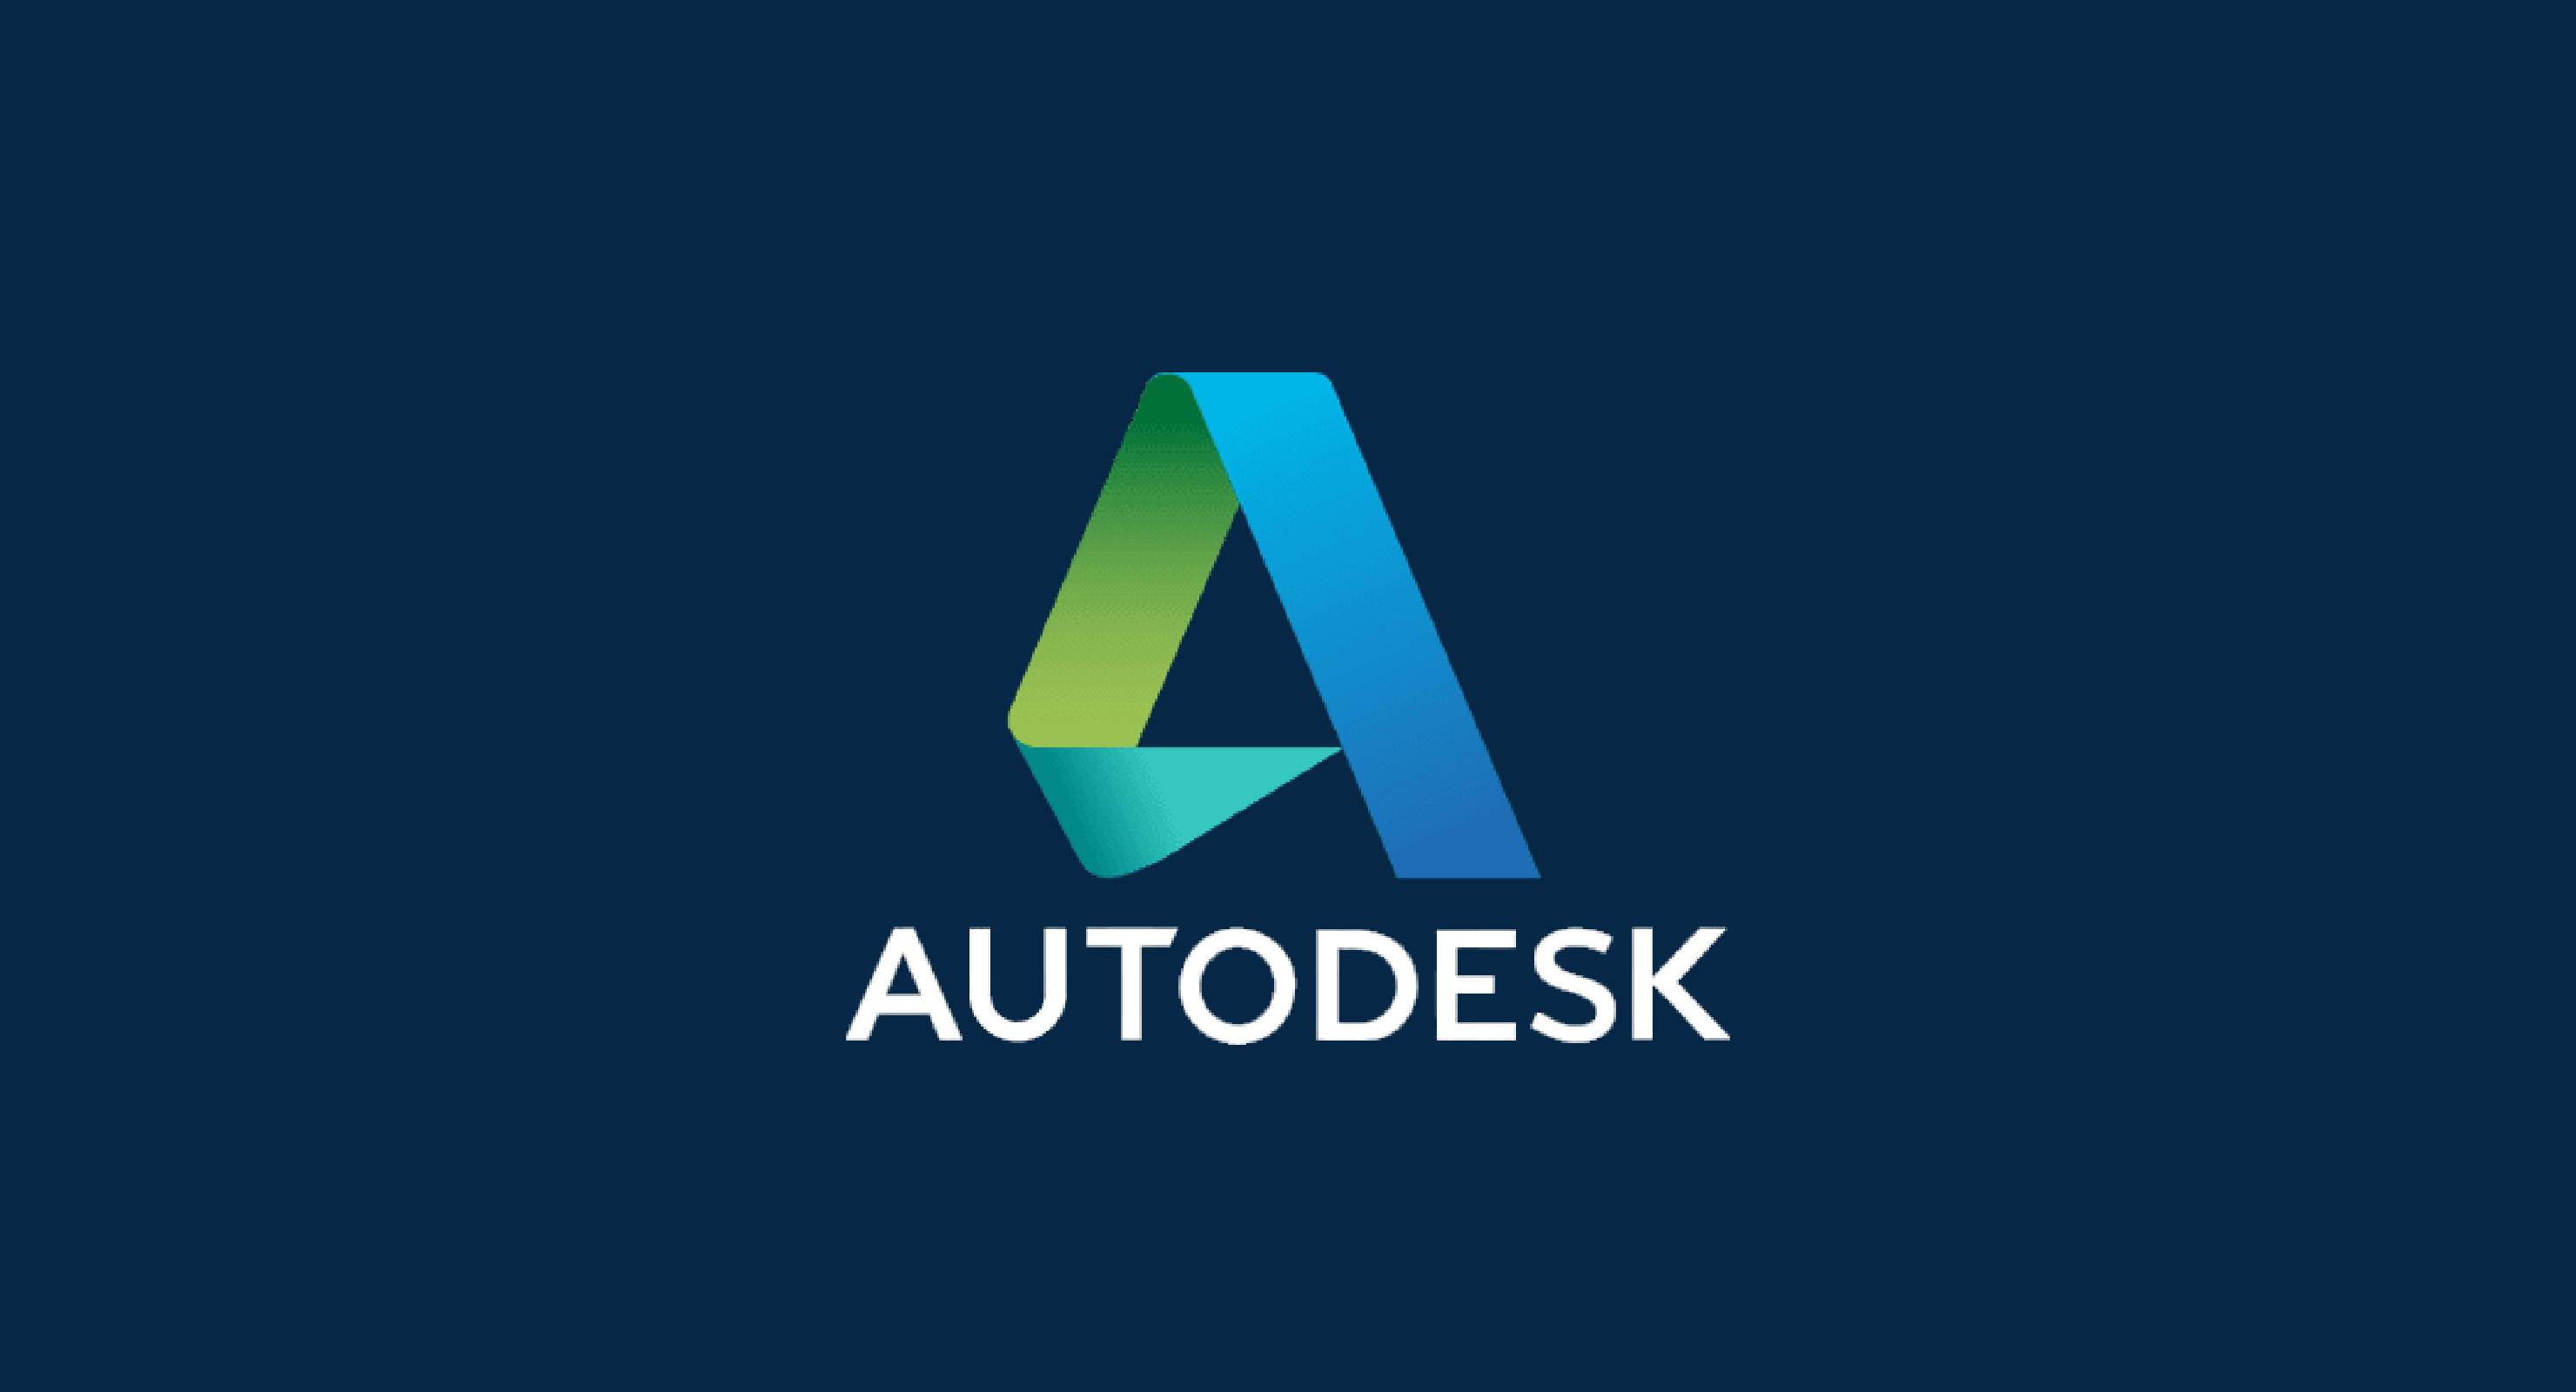 autodesk-2 copy 3_1@2x